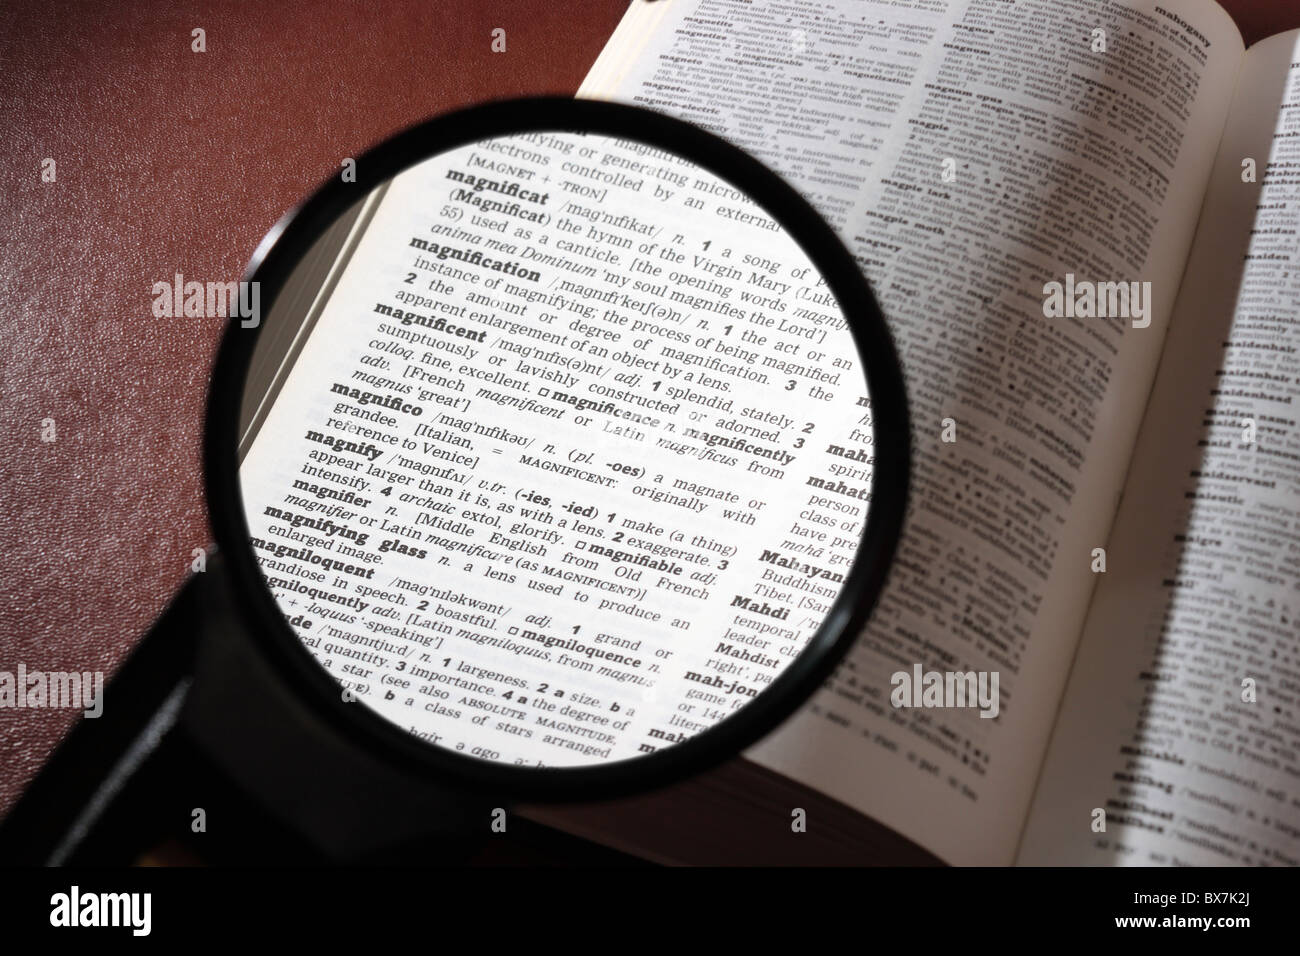 Reading a dictionary with a magnifying glass to read the definition of 'magnification', 'magnify' - Stock Image